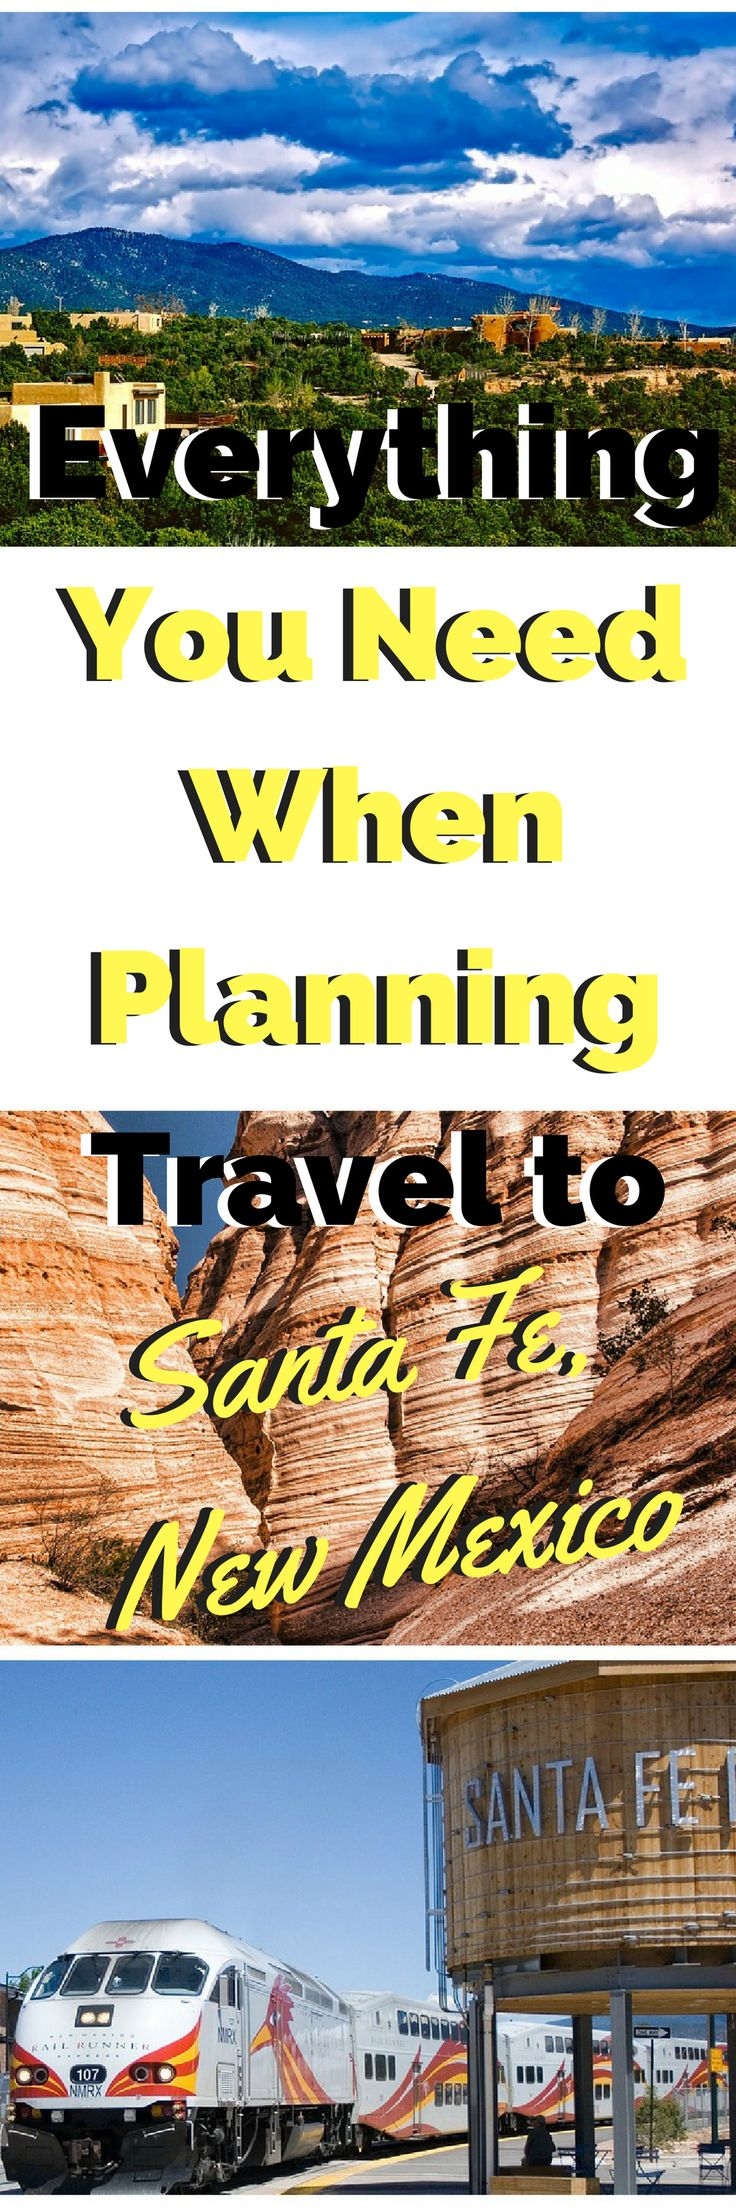 Planning travel to Santa Fe, New Mexico? Read picks from a local. Best Santa Fe points of interest, restaurants, hotels and B&Bs, museums, & shopping. via @midlifeblv